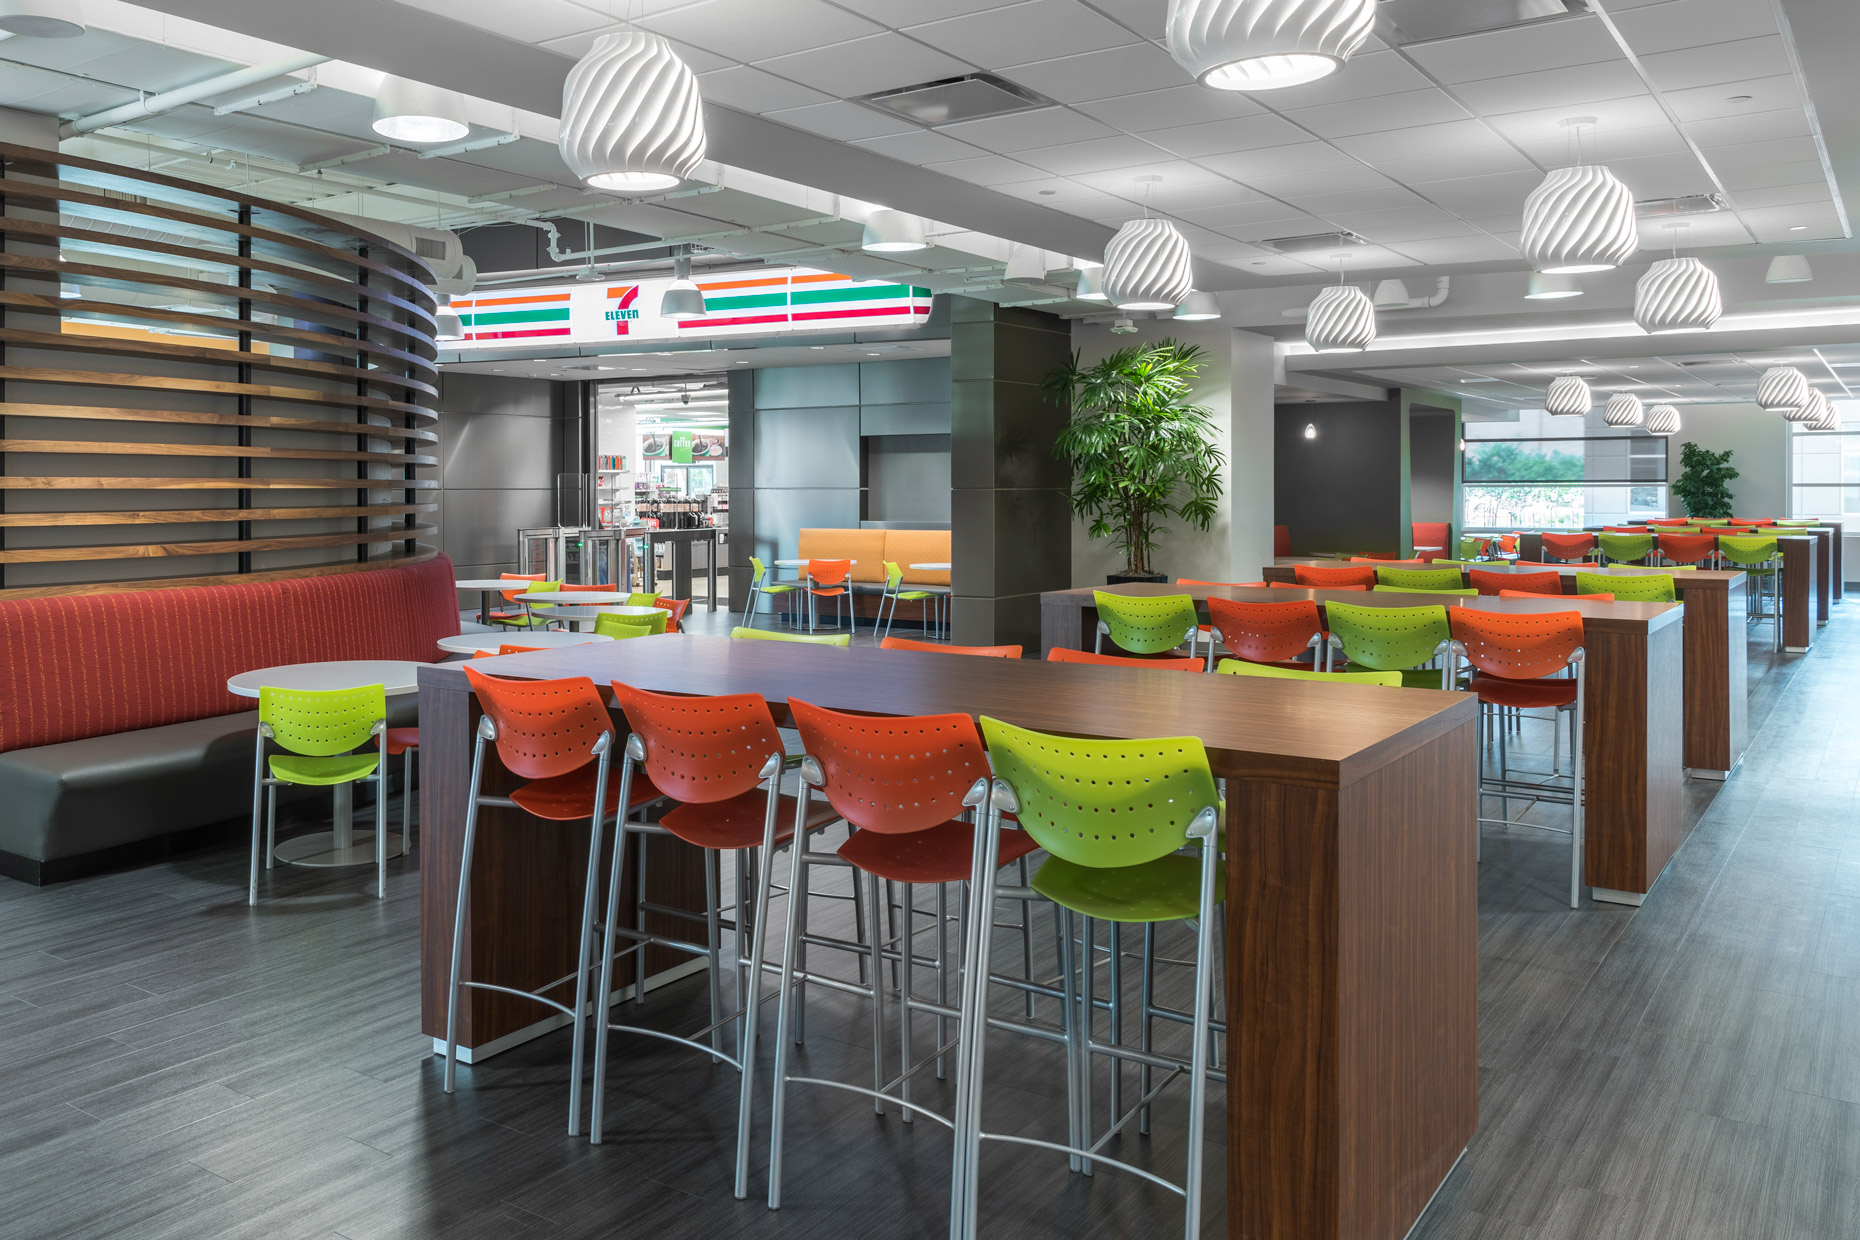 7-Eleven HQ by Dallas architectural photographer Kevin Brown